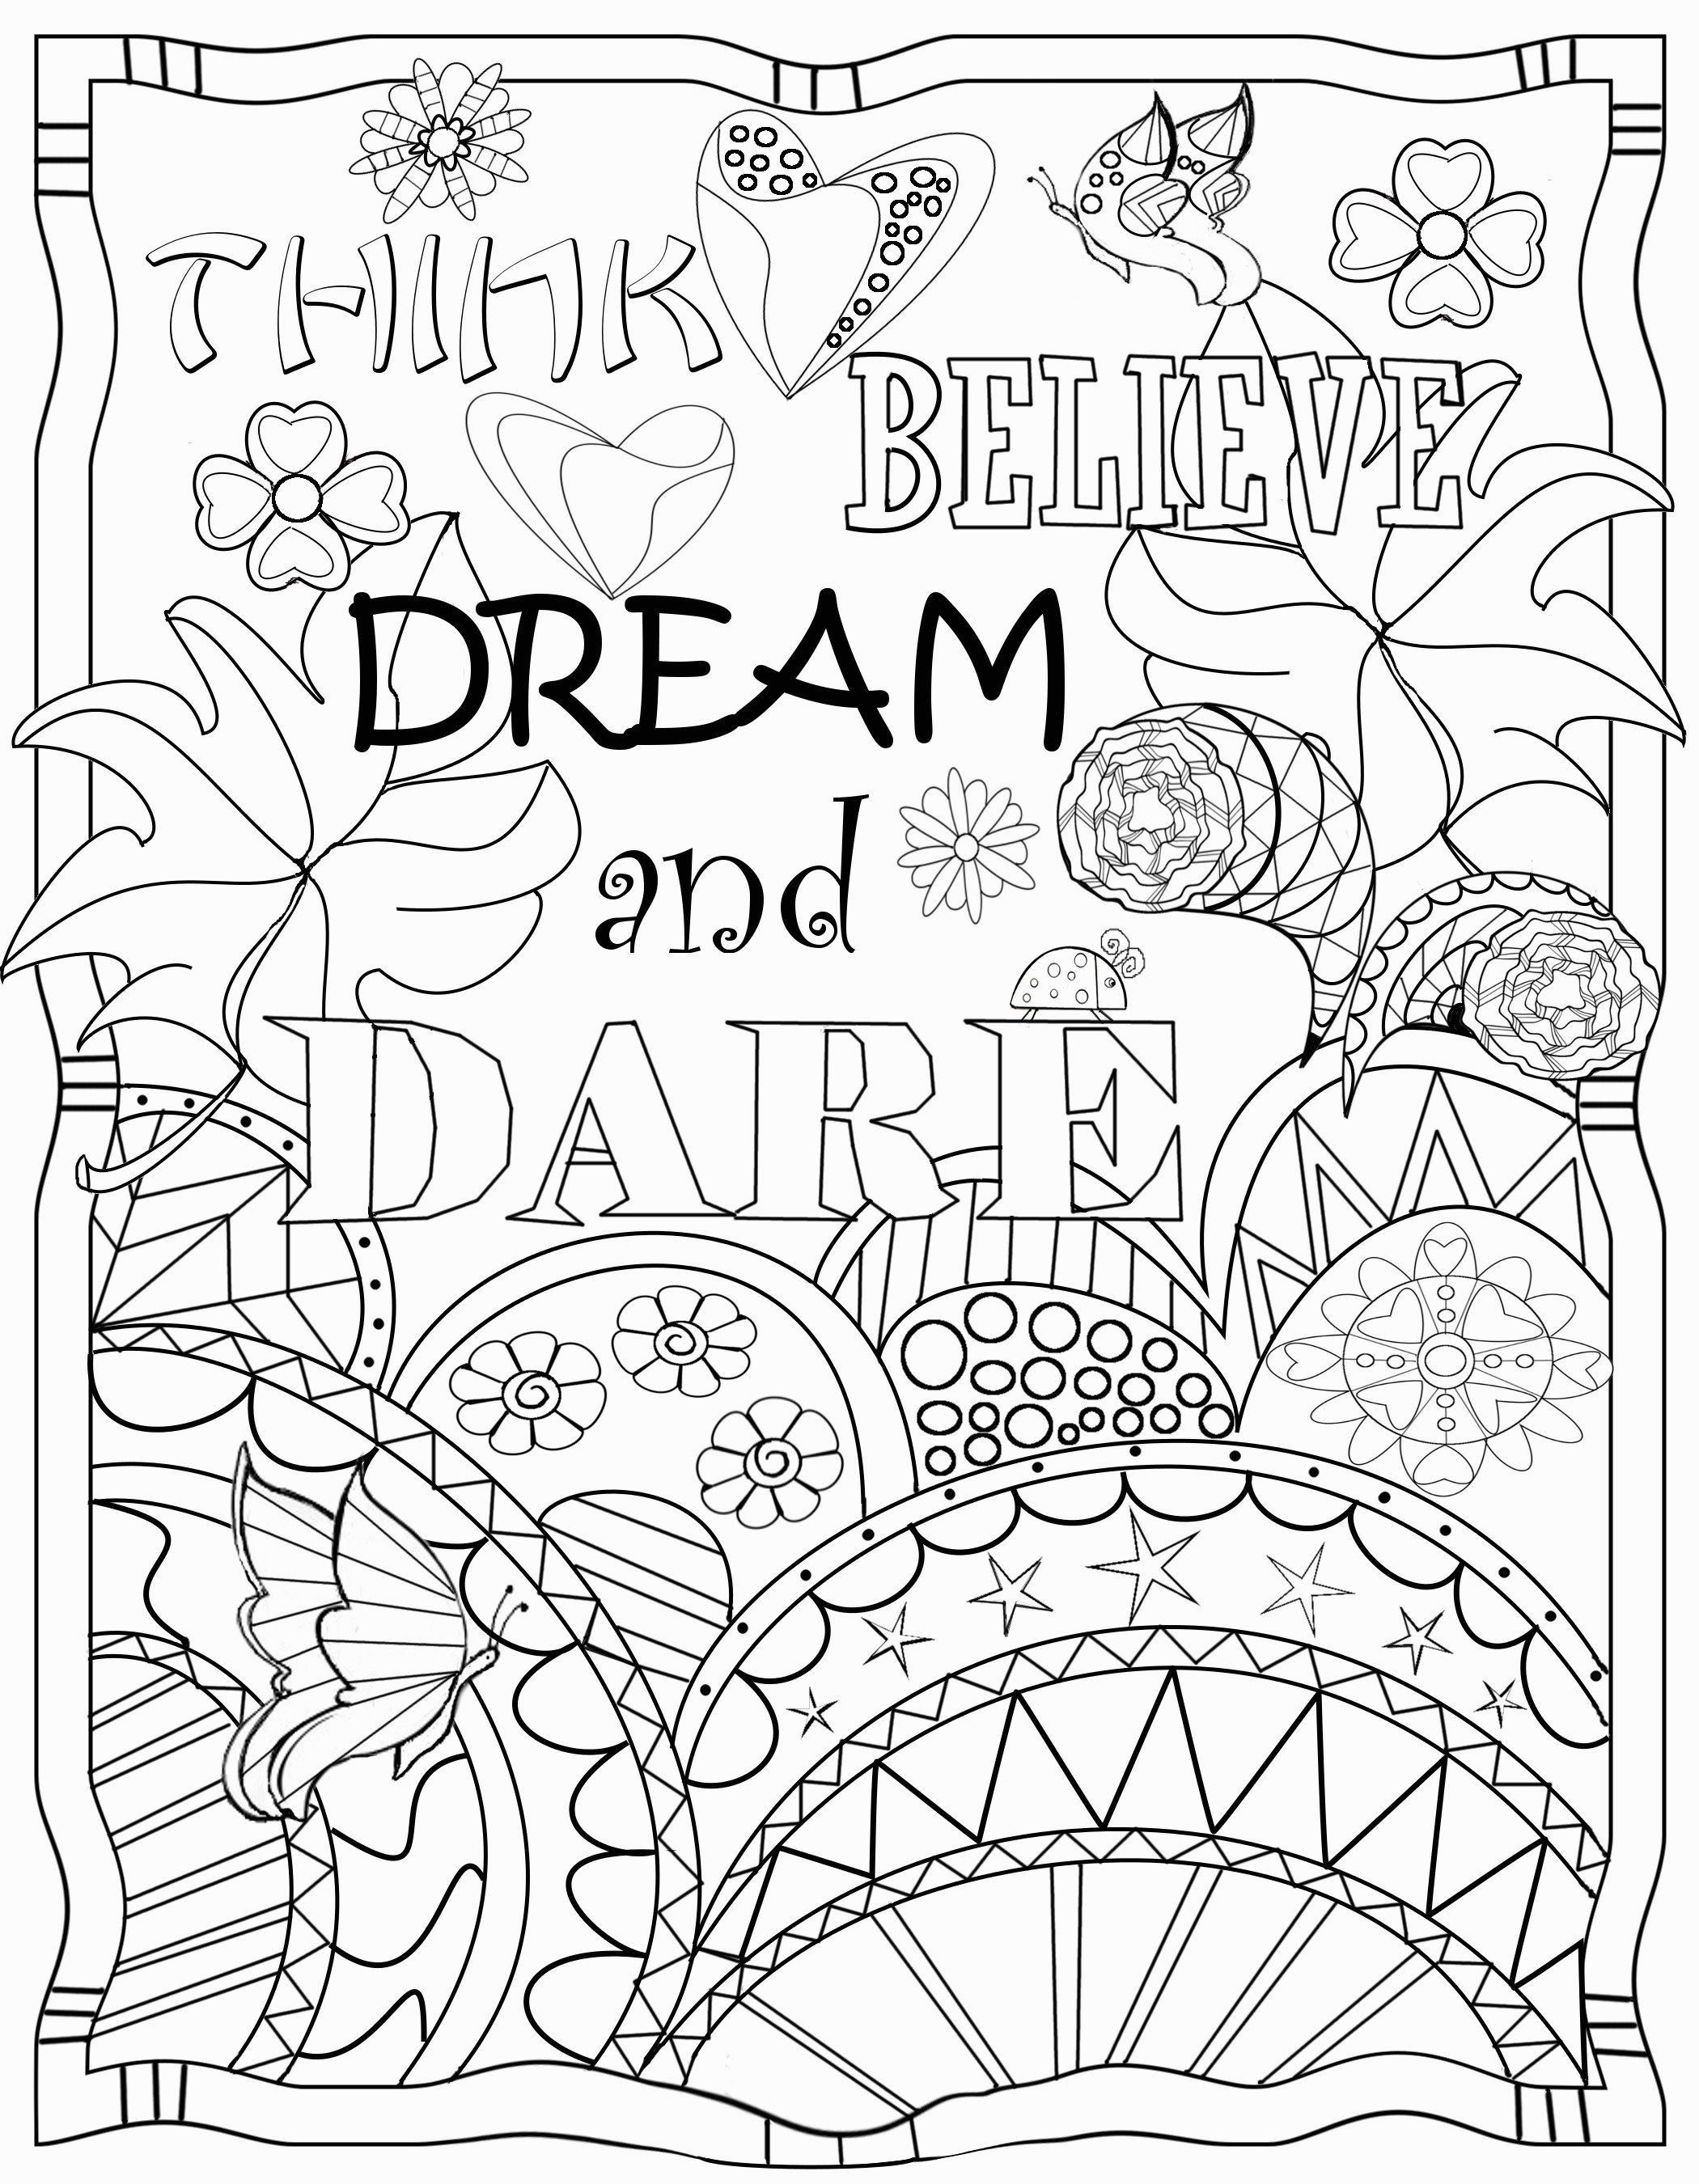 mary engelbreit coloring pages 37 best images about coloring pages on pinterest mary engelbreit coloring pages